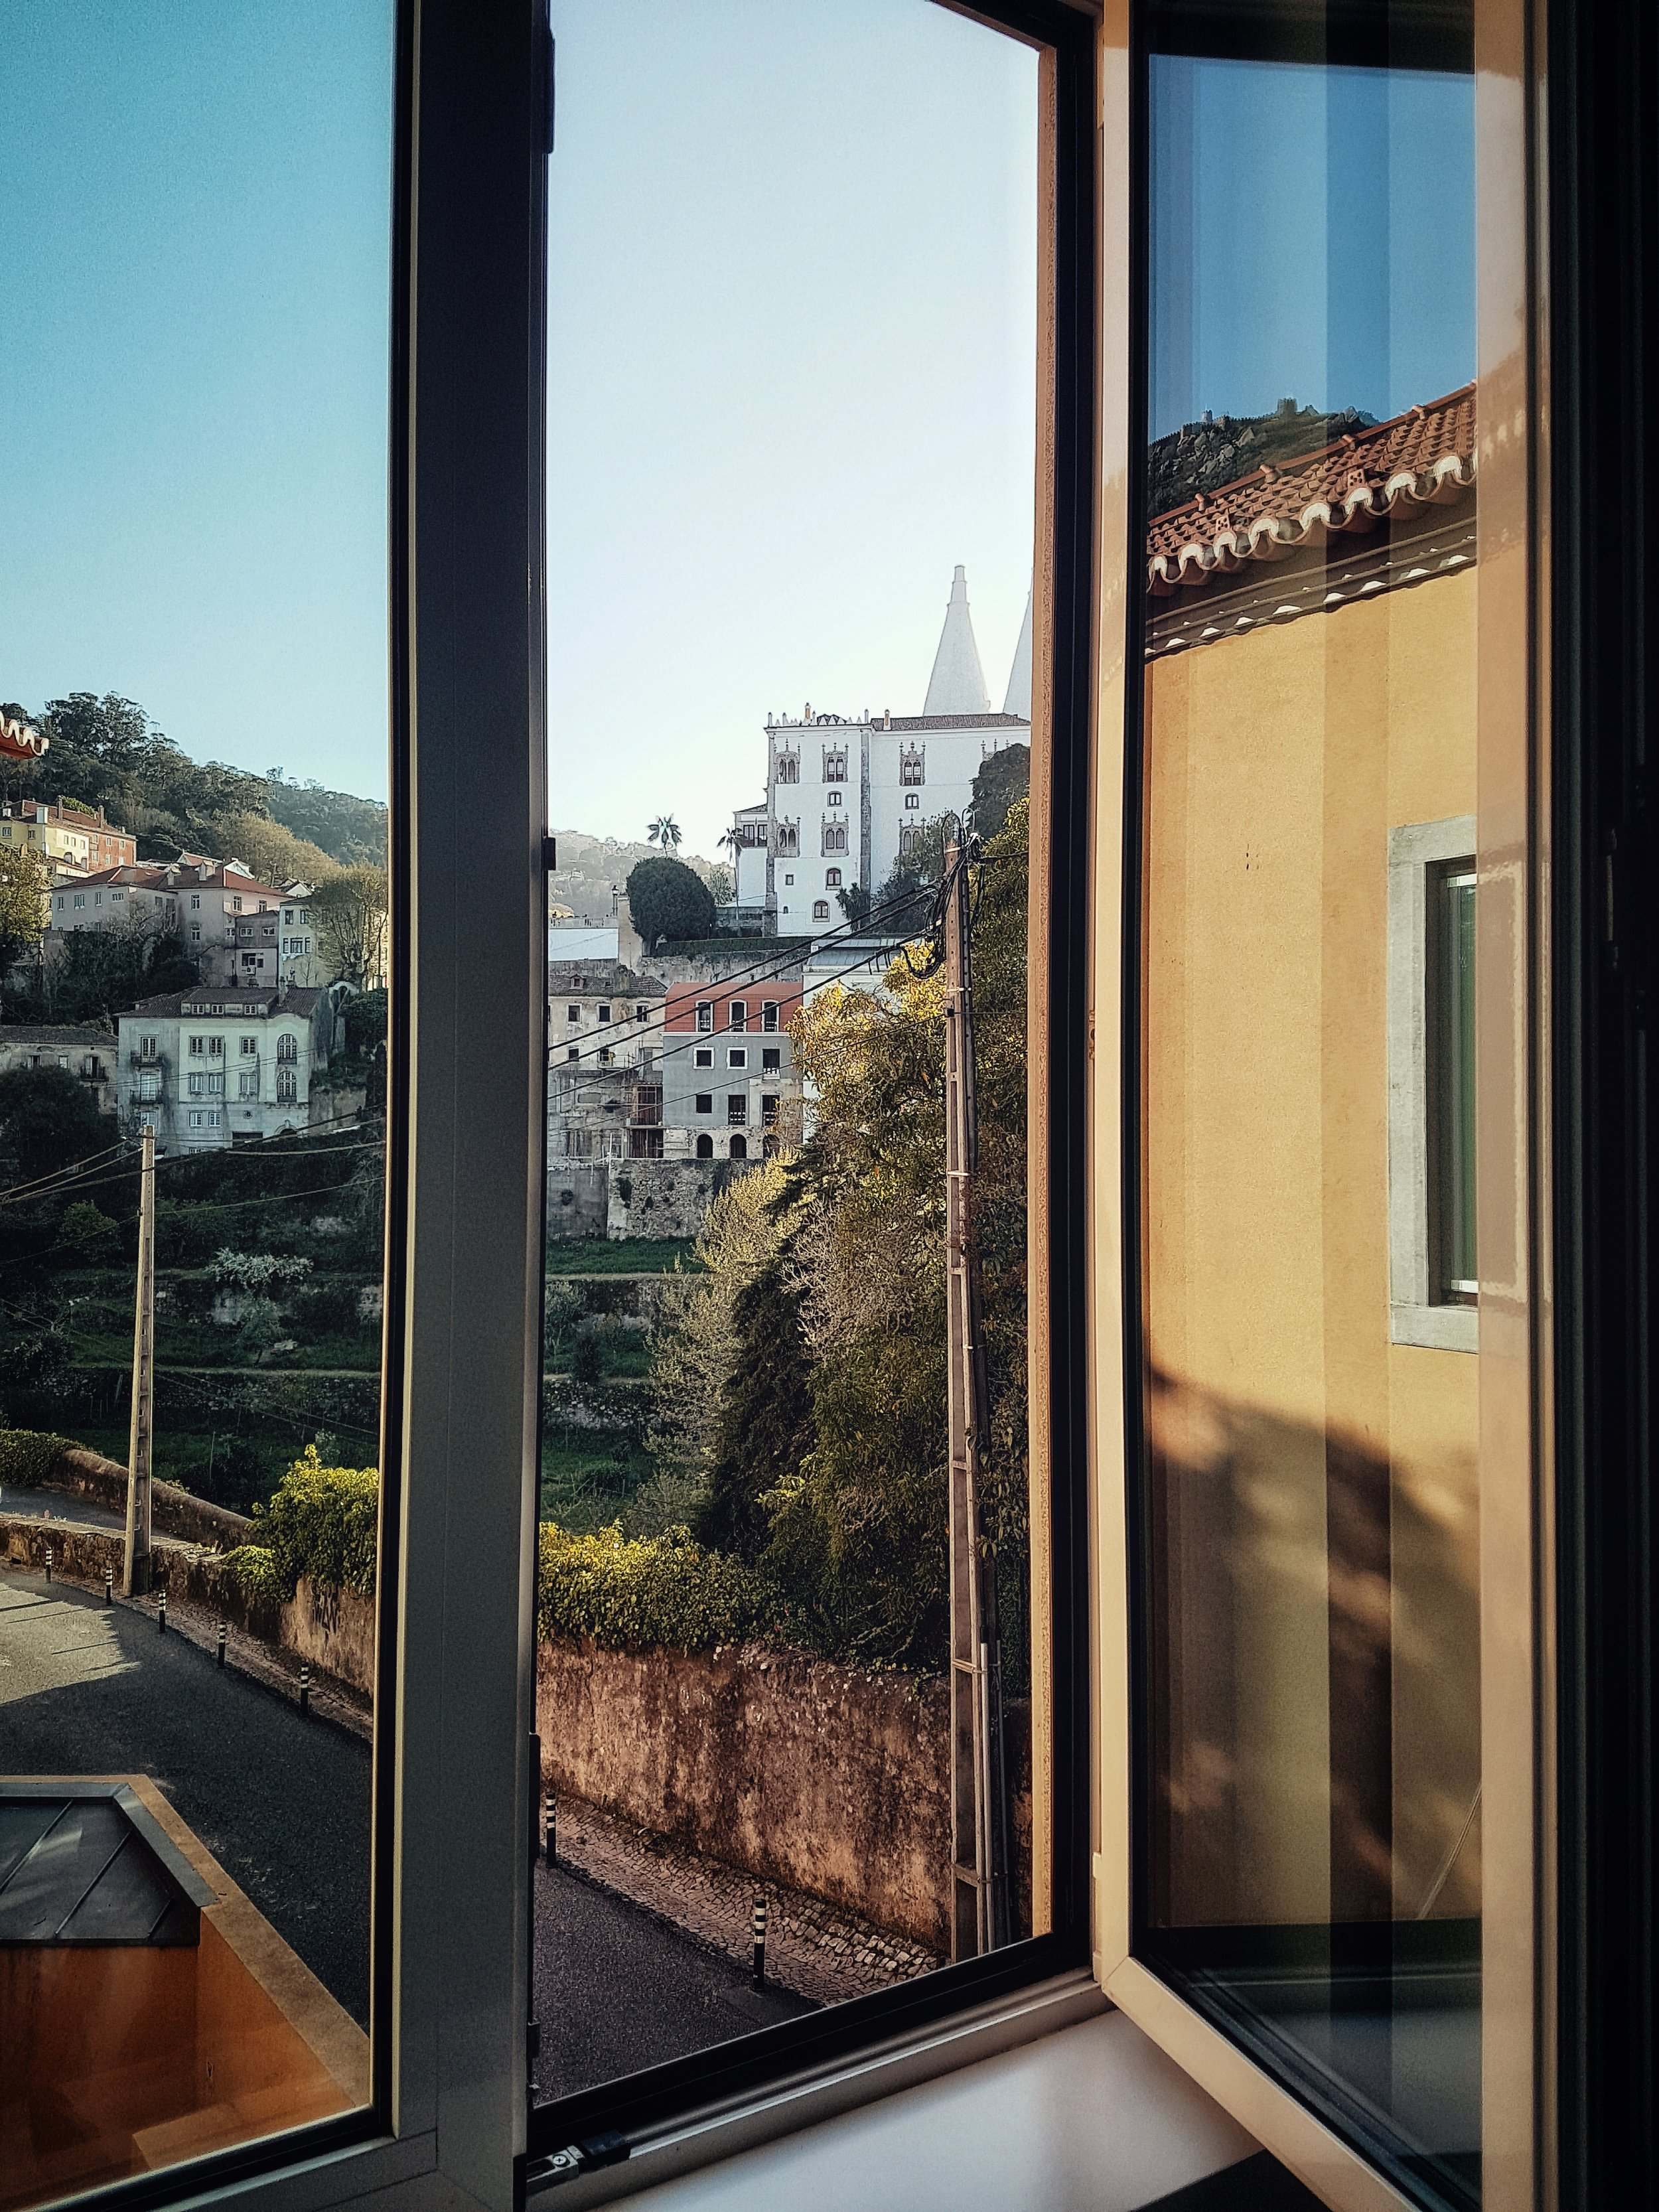 Portugal. Travel. Sintra. Sunshine. Hotel. History. view. room with a view. pena palace.  palace. town. old town. through the window.jpeg